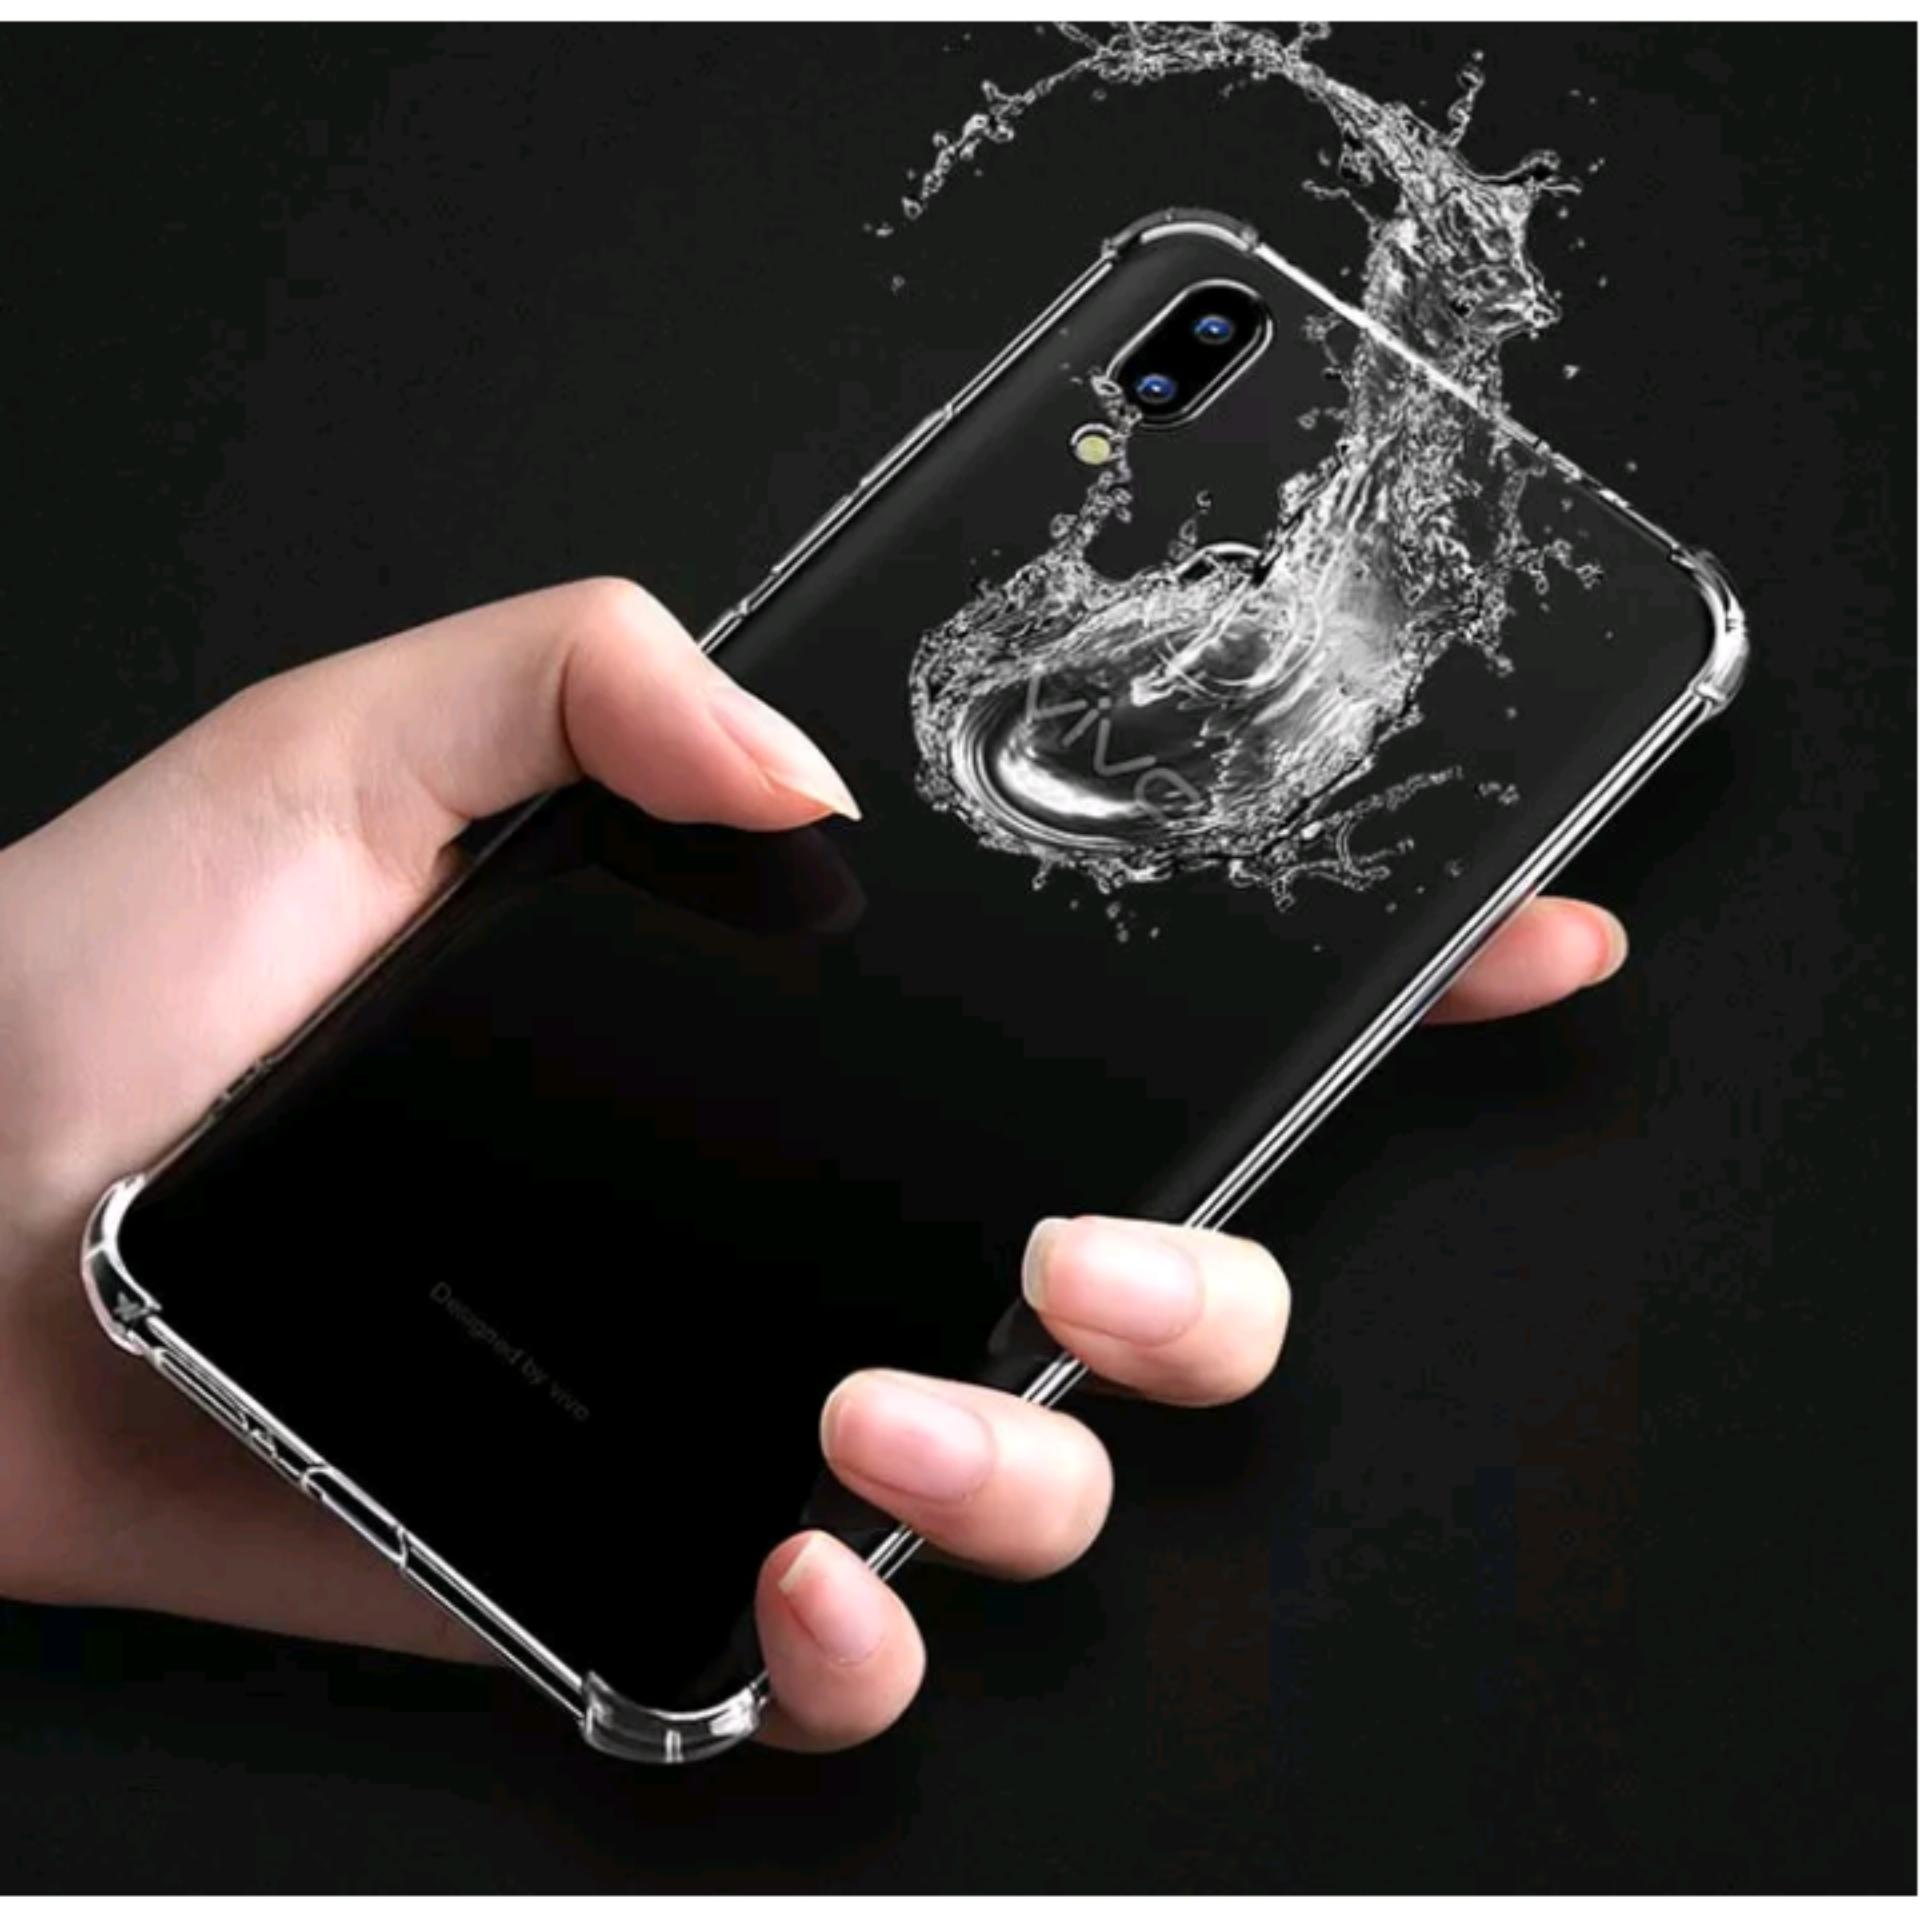 Kelebihan Fuze Anti Crack Case Vivo Y65 Clear Terkini Daftar Harga Samsung Galaxy S8 Plus Putih Premium Shock For V9 Elegant Acrylic Bening